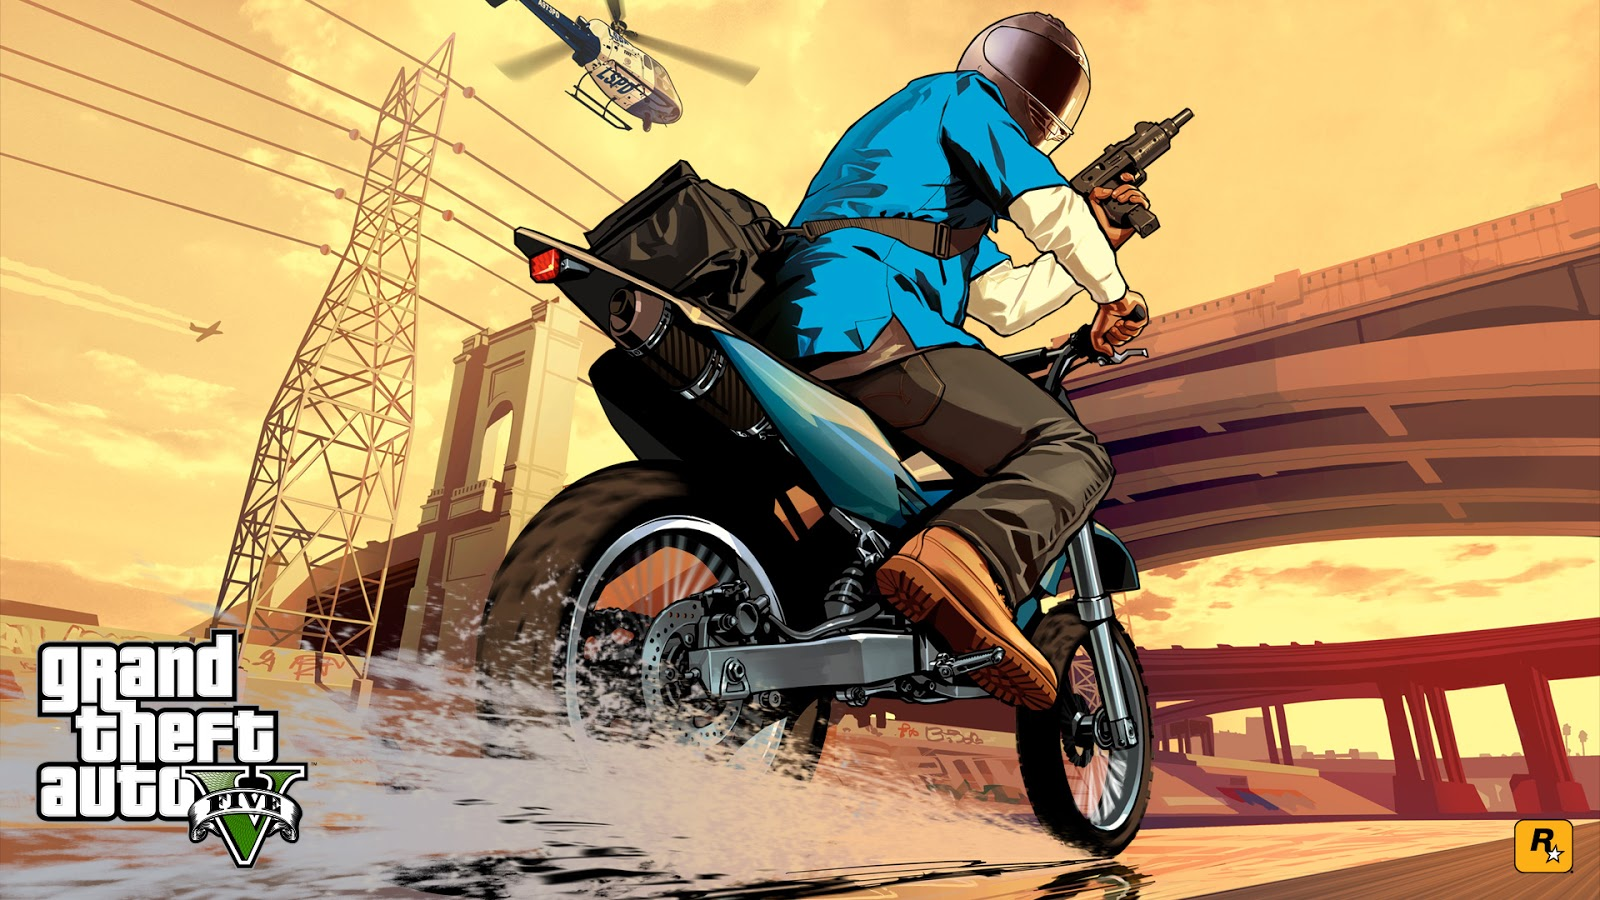 DaeTube GTA V HD Wallpaper Desktop Background Sceenshoot Game GTA 5 1600x900